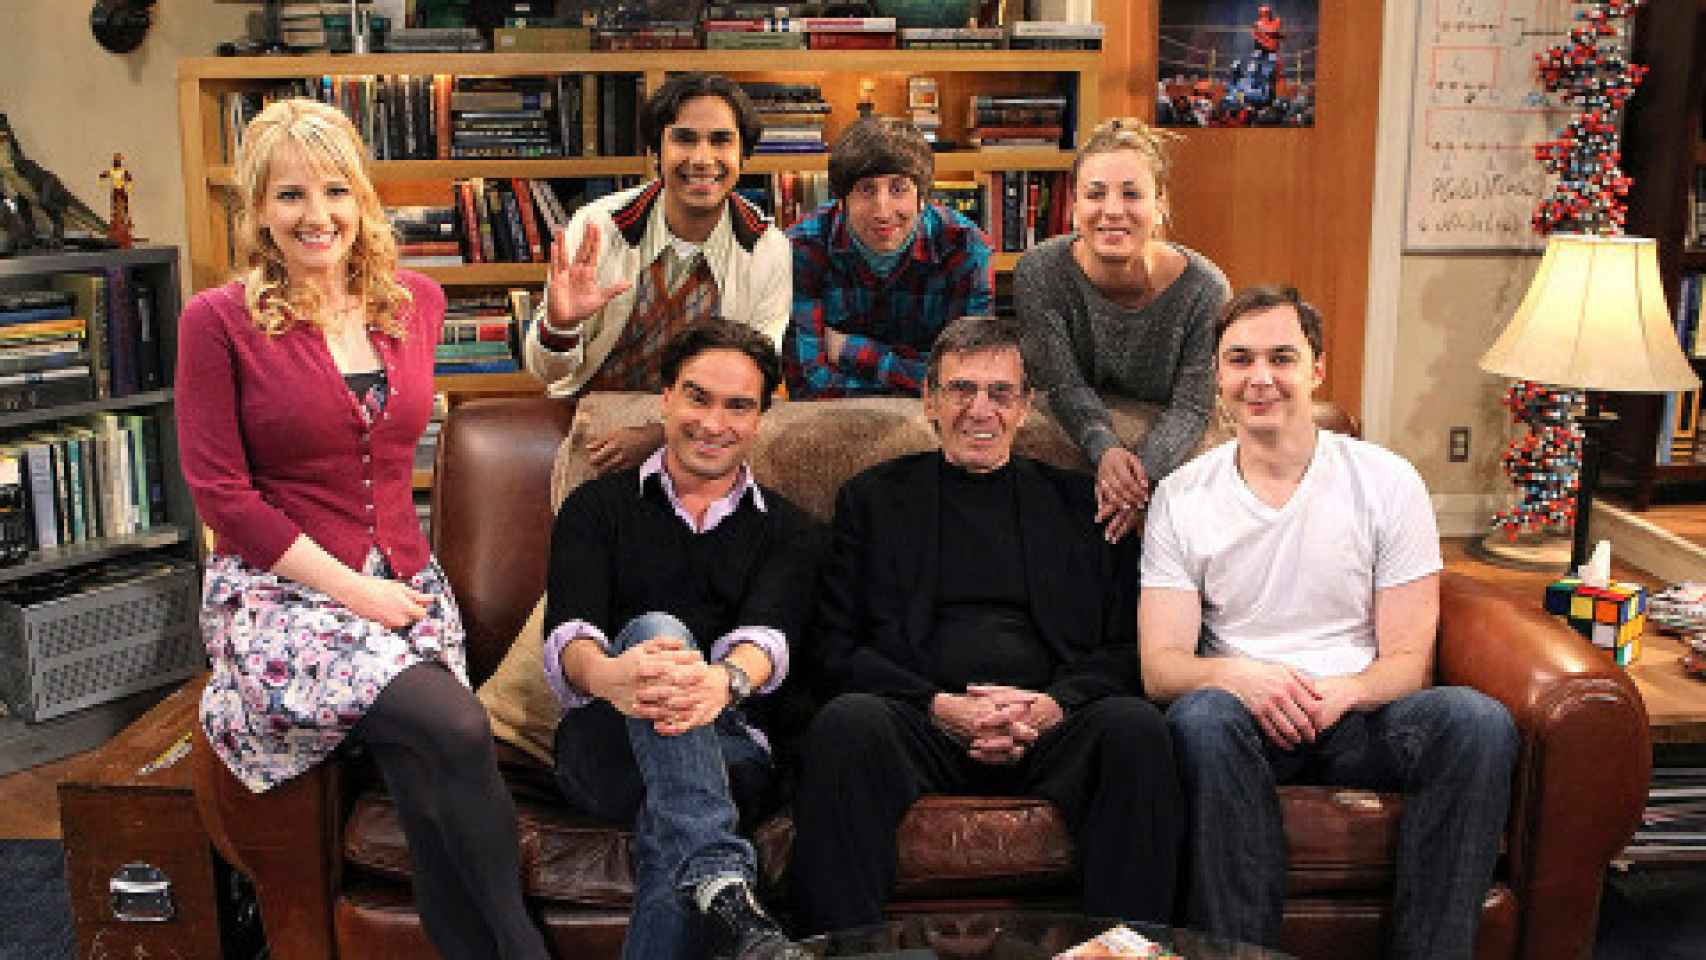 Leonard Nimoy en el plató de la serie The Big Bang Theory.